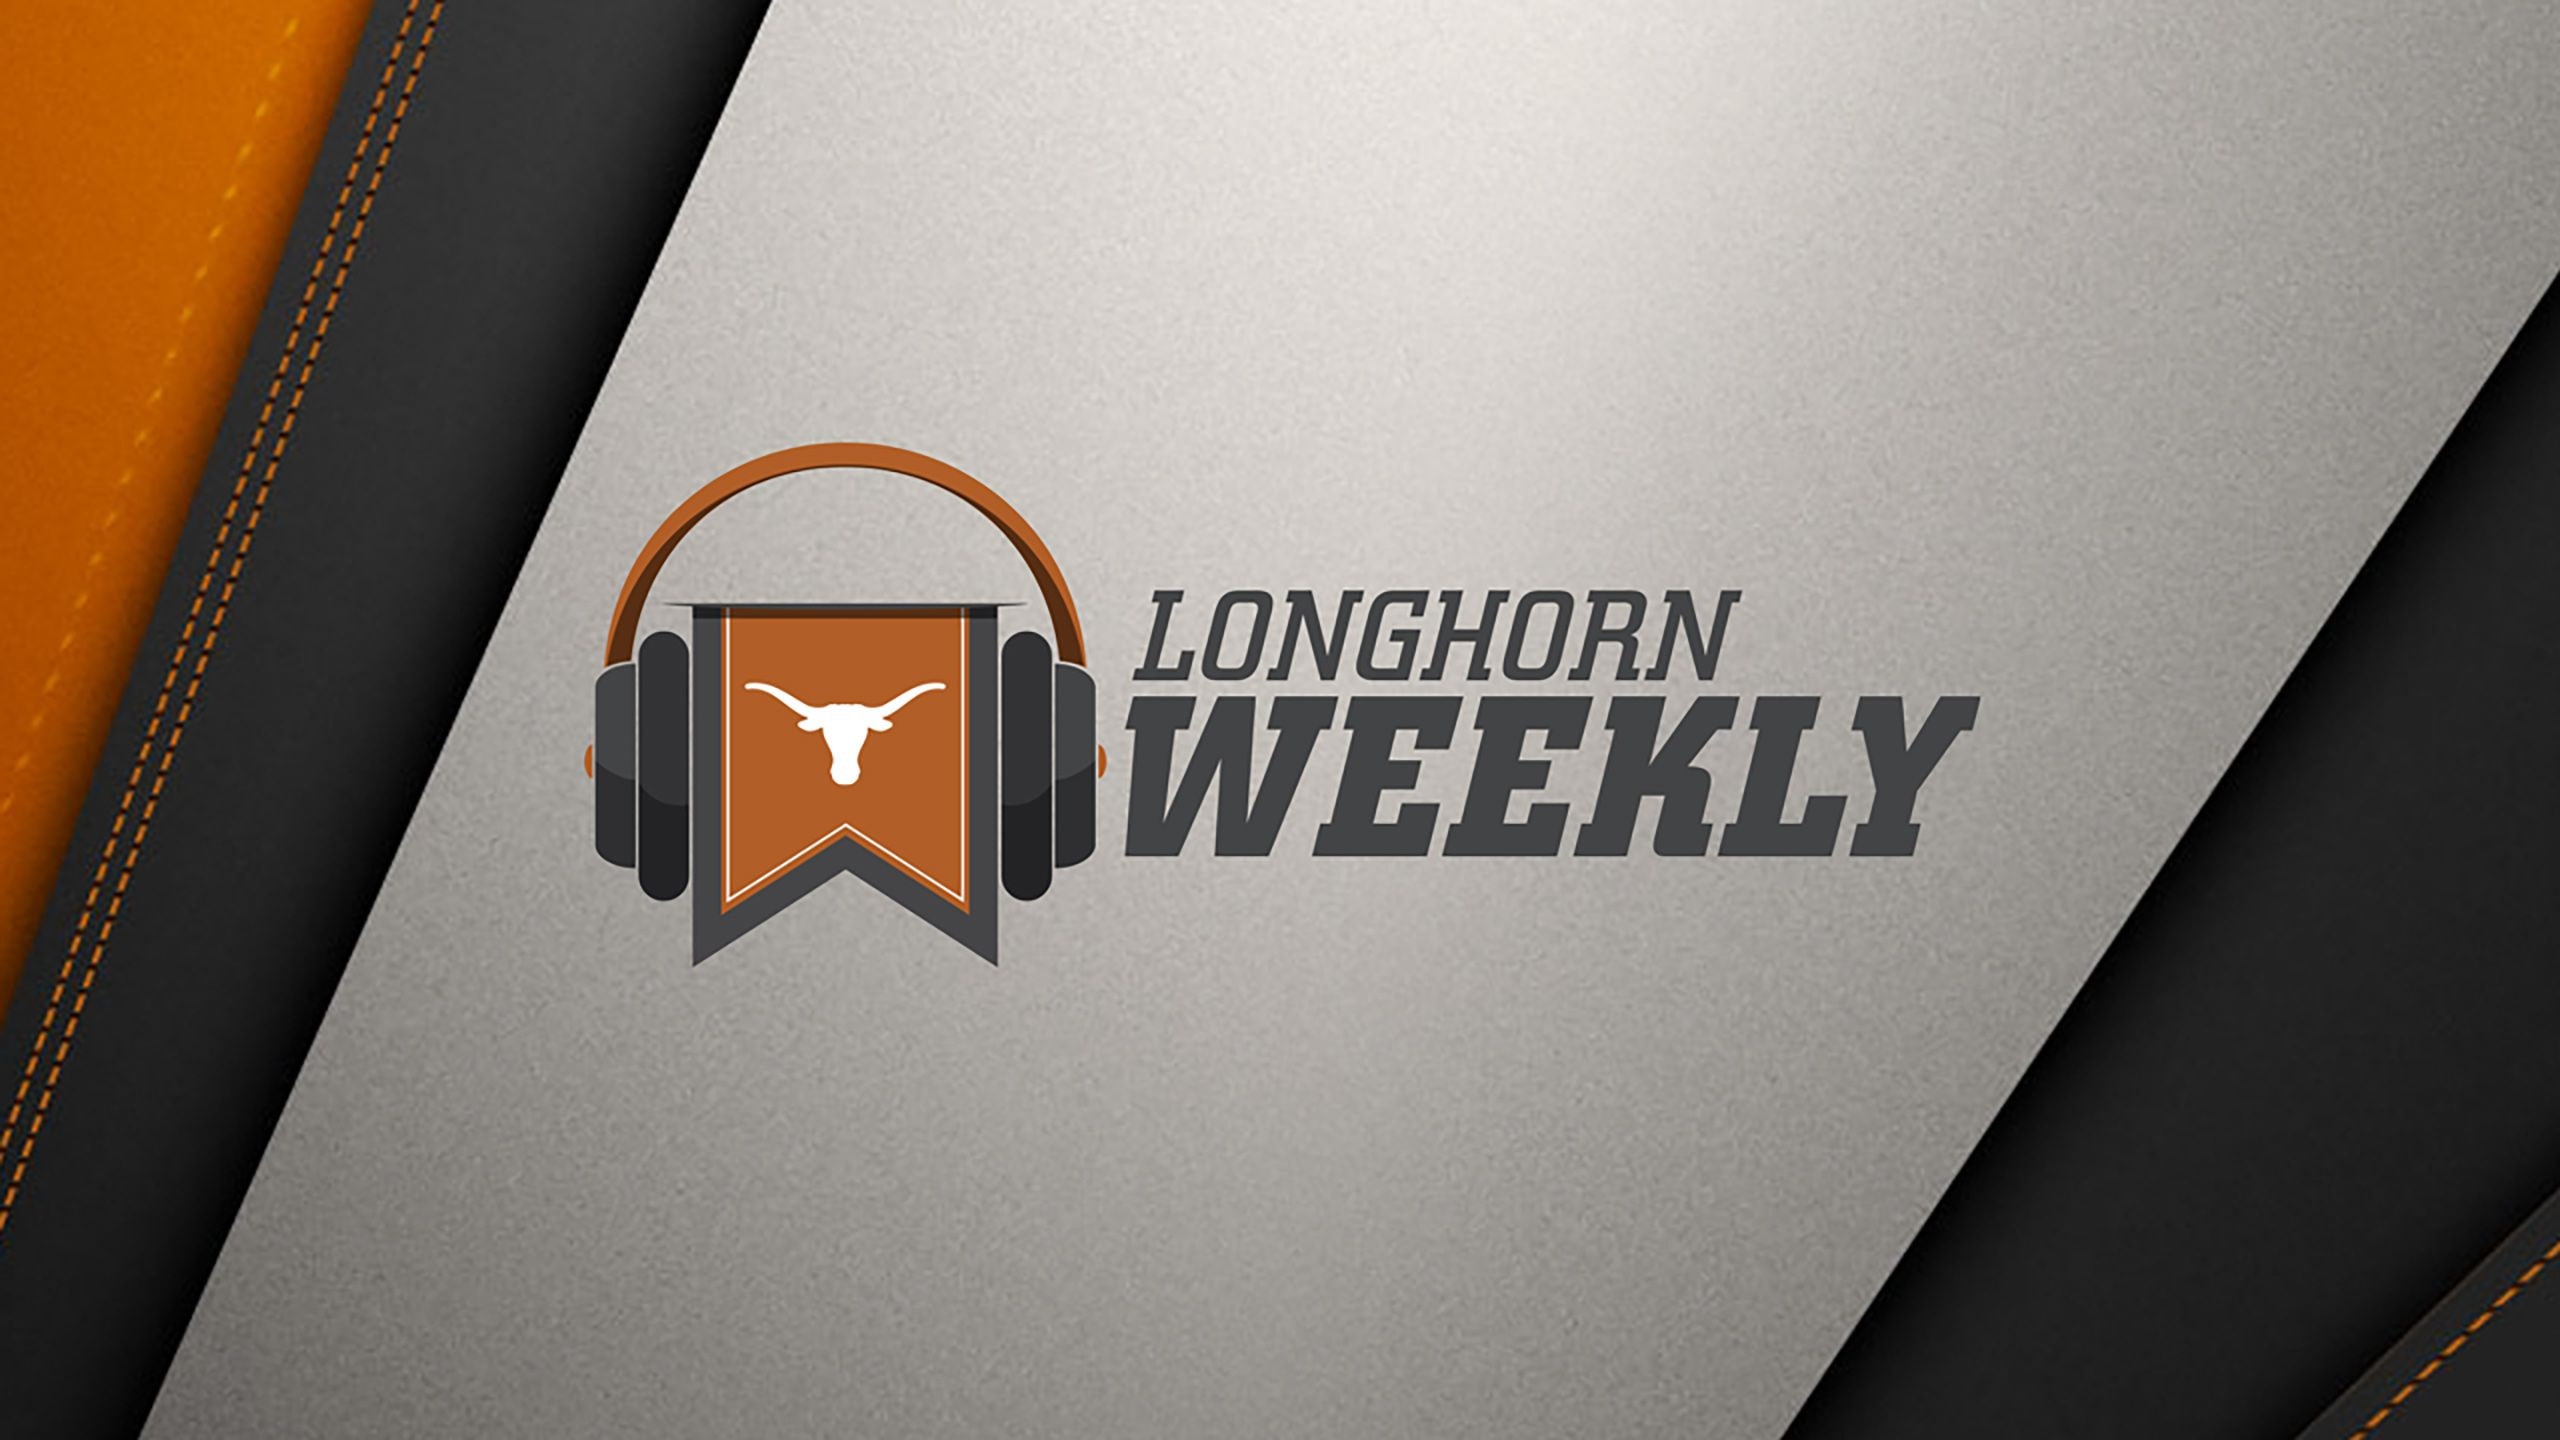 Longhorn Weekly with Tom Herman